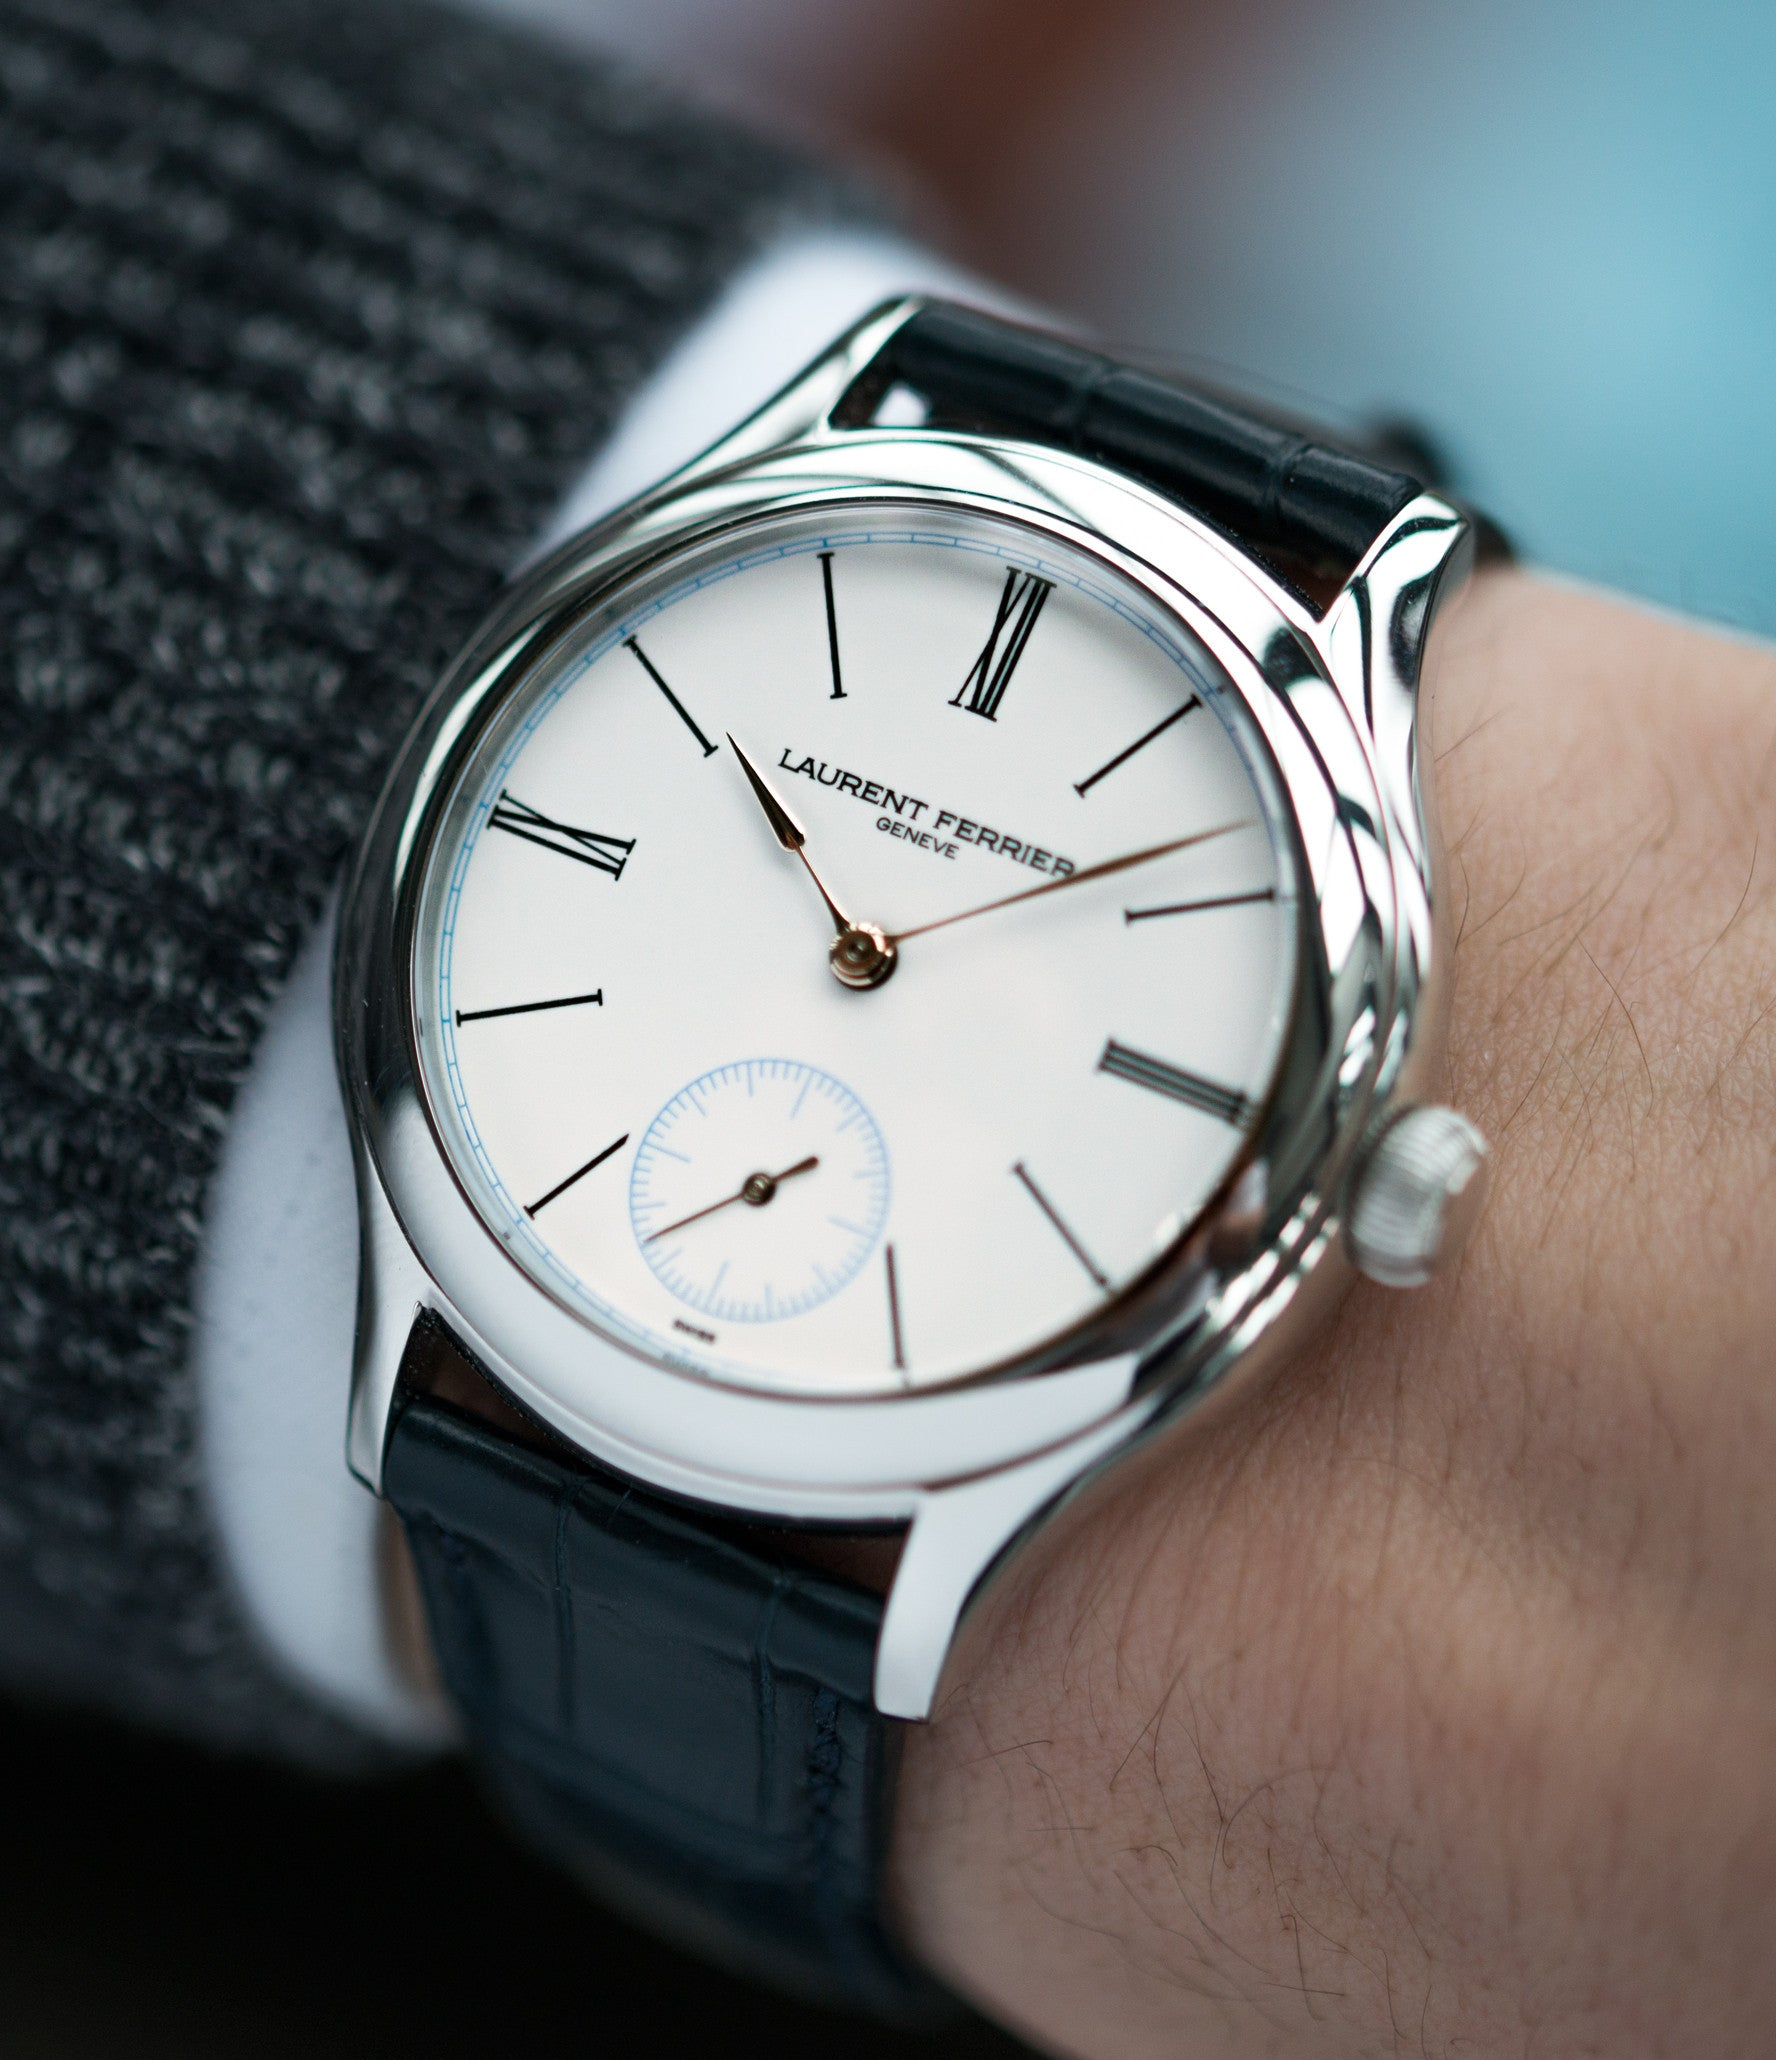 on the wrist Laurent Ferrier Galet Micro-rotor LCF006 platinum enamel dial limited edition watch for sale online at A Collected Man London specialist independent watchmakers